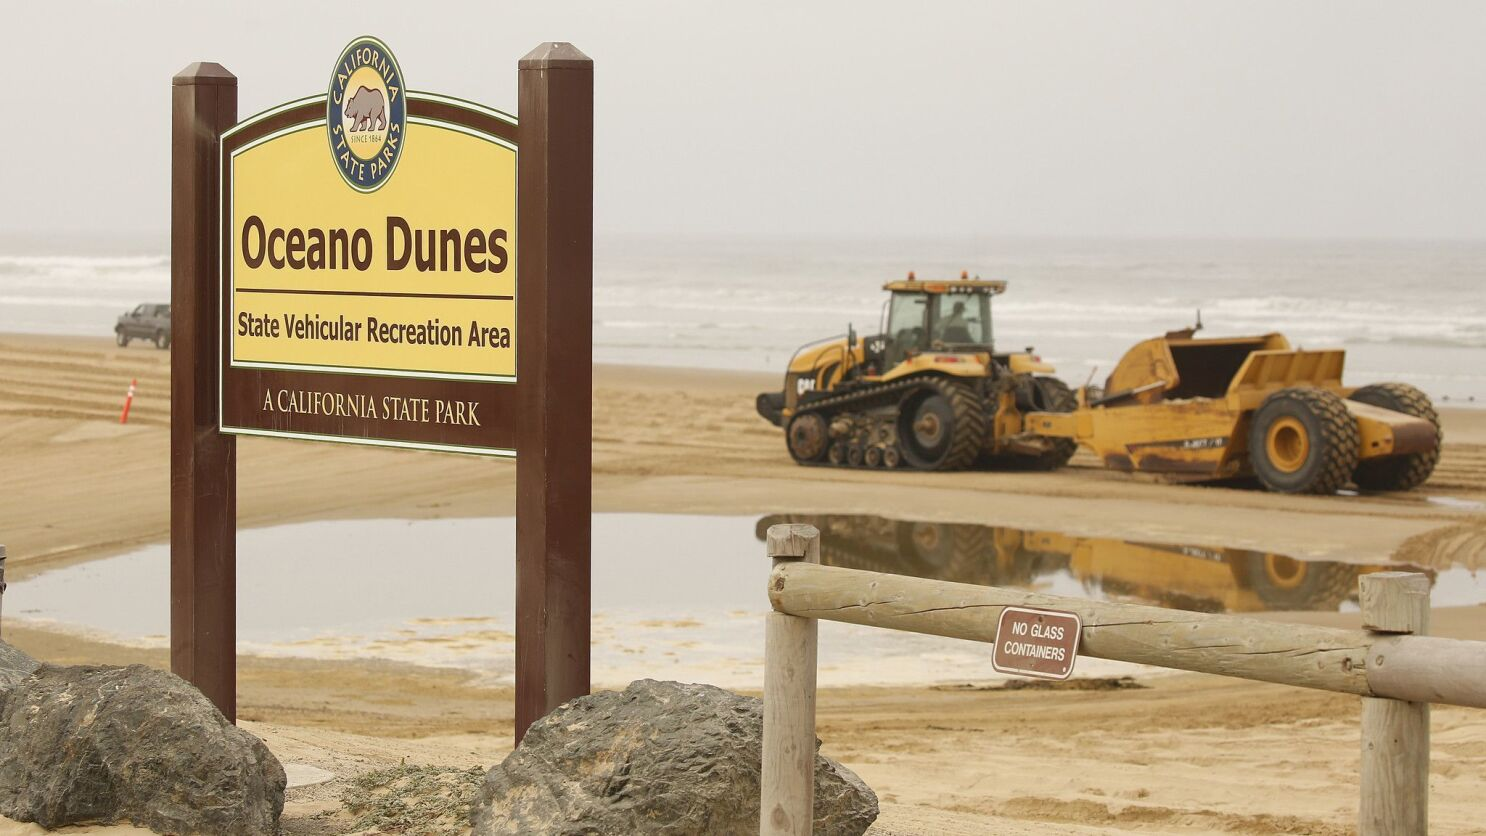 18-year-old dies in off-road accident at Oceano Dunes, the 6th death there this year - Los Angeles Times